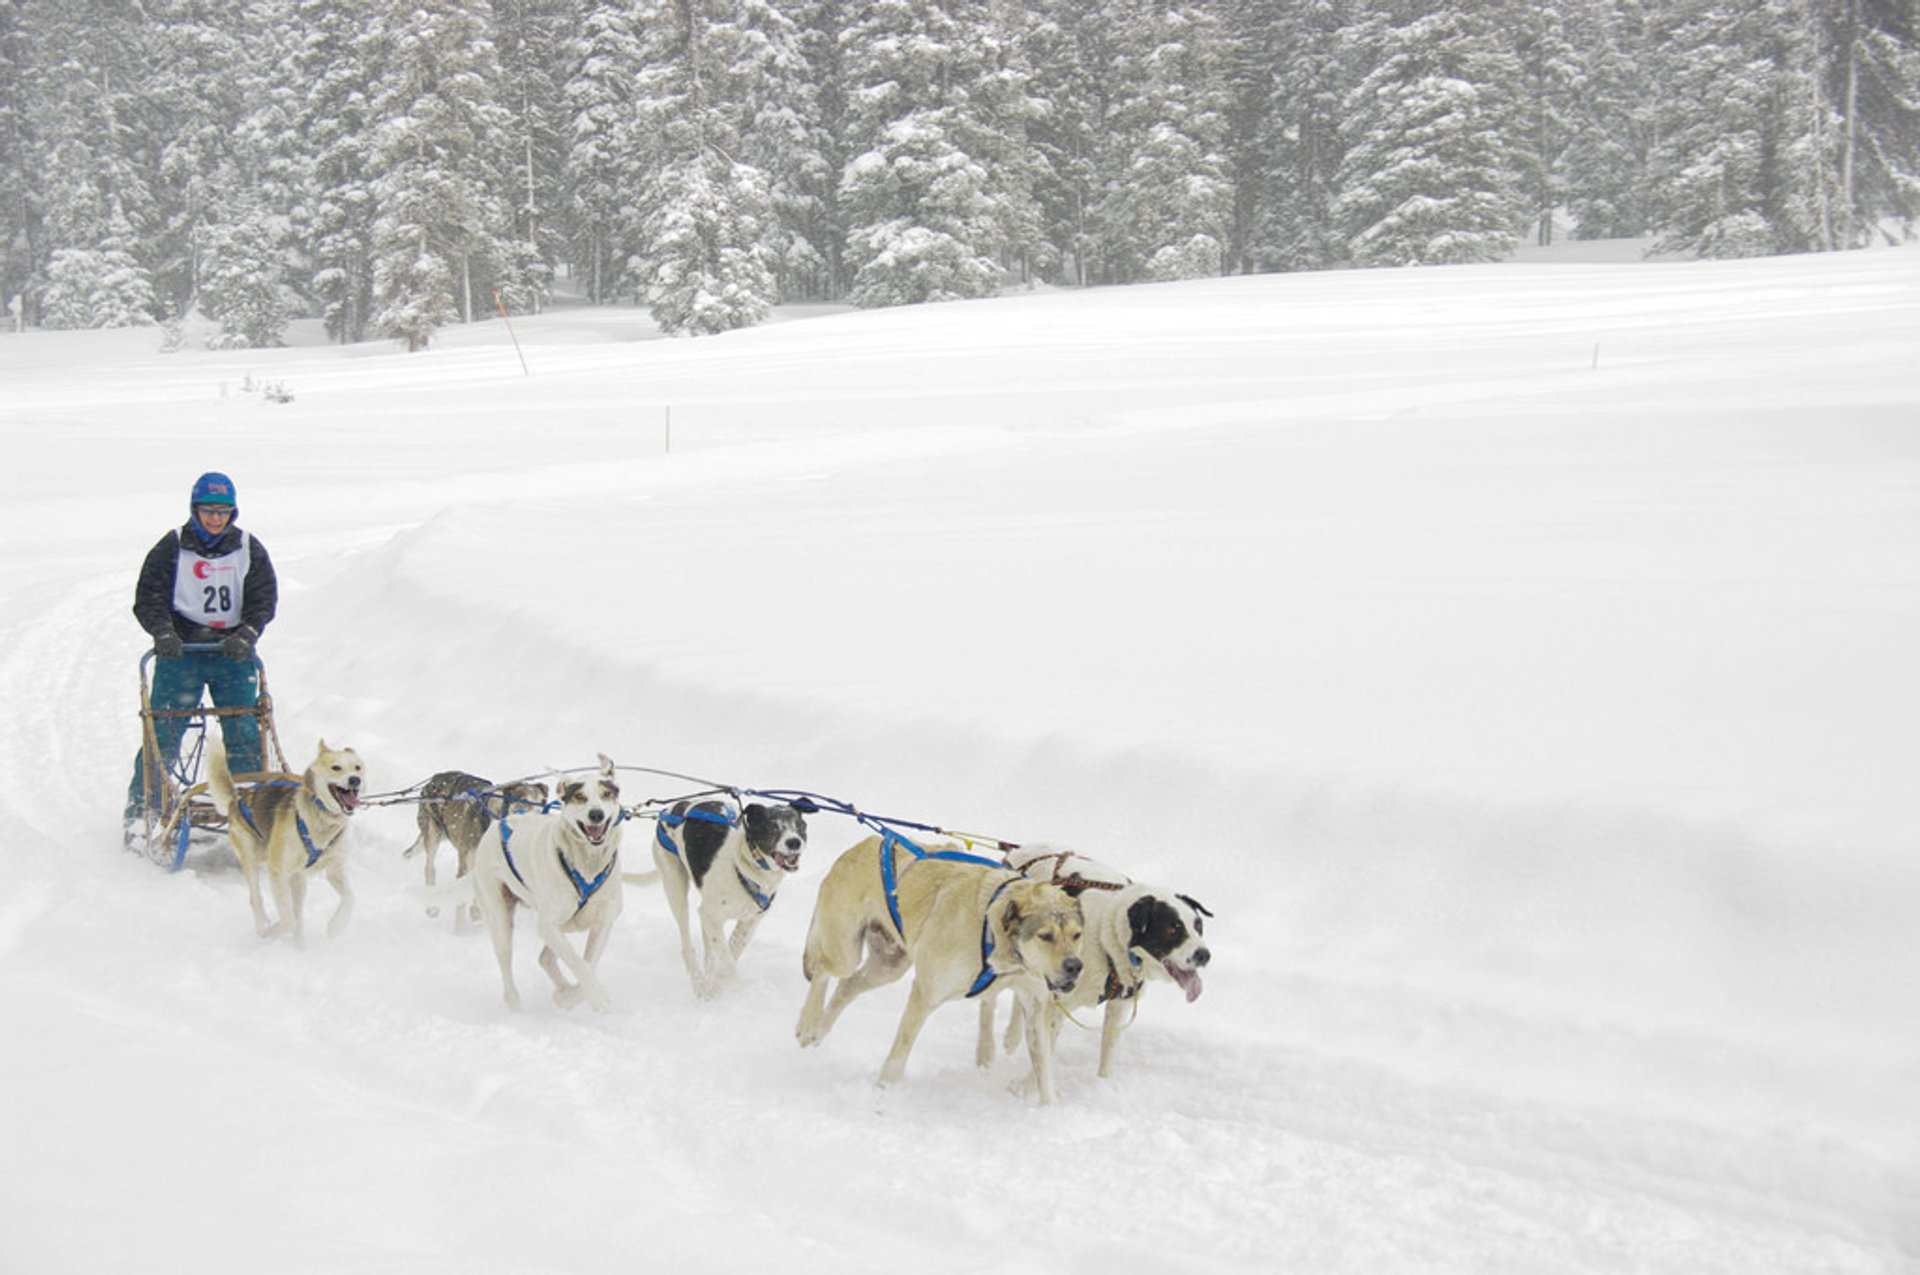 Dog Sledding & Snow Tubing in Colorado 2019 - Best Time